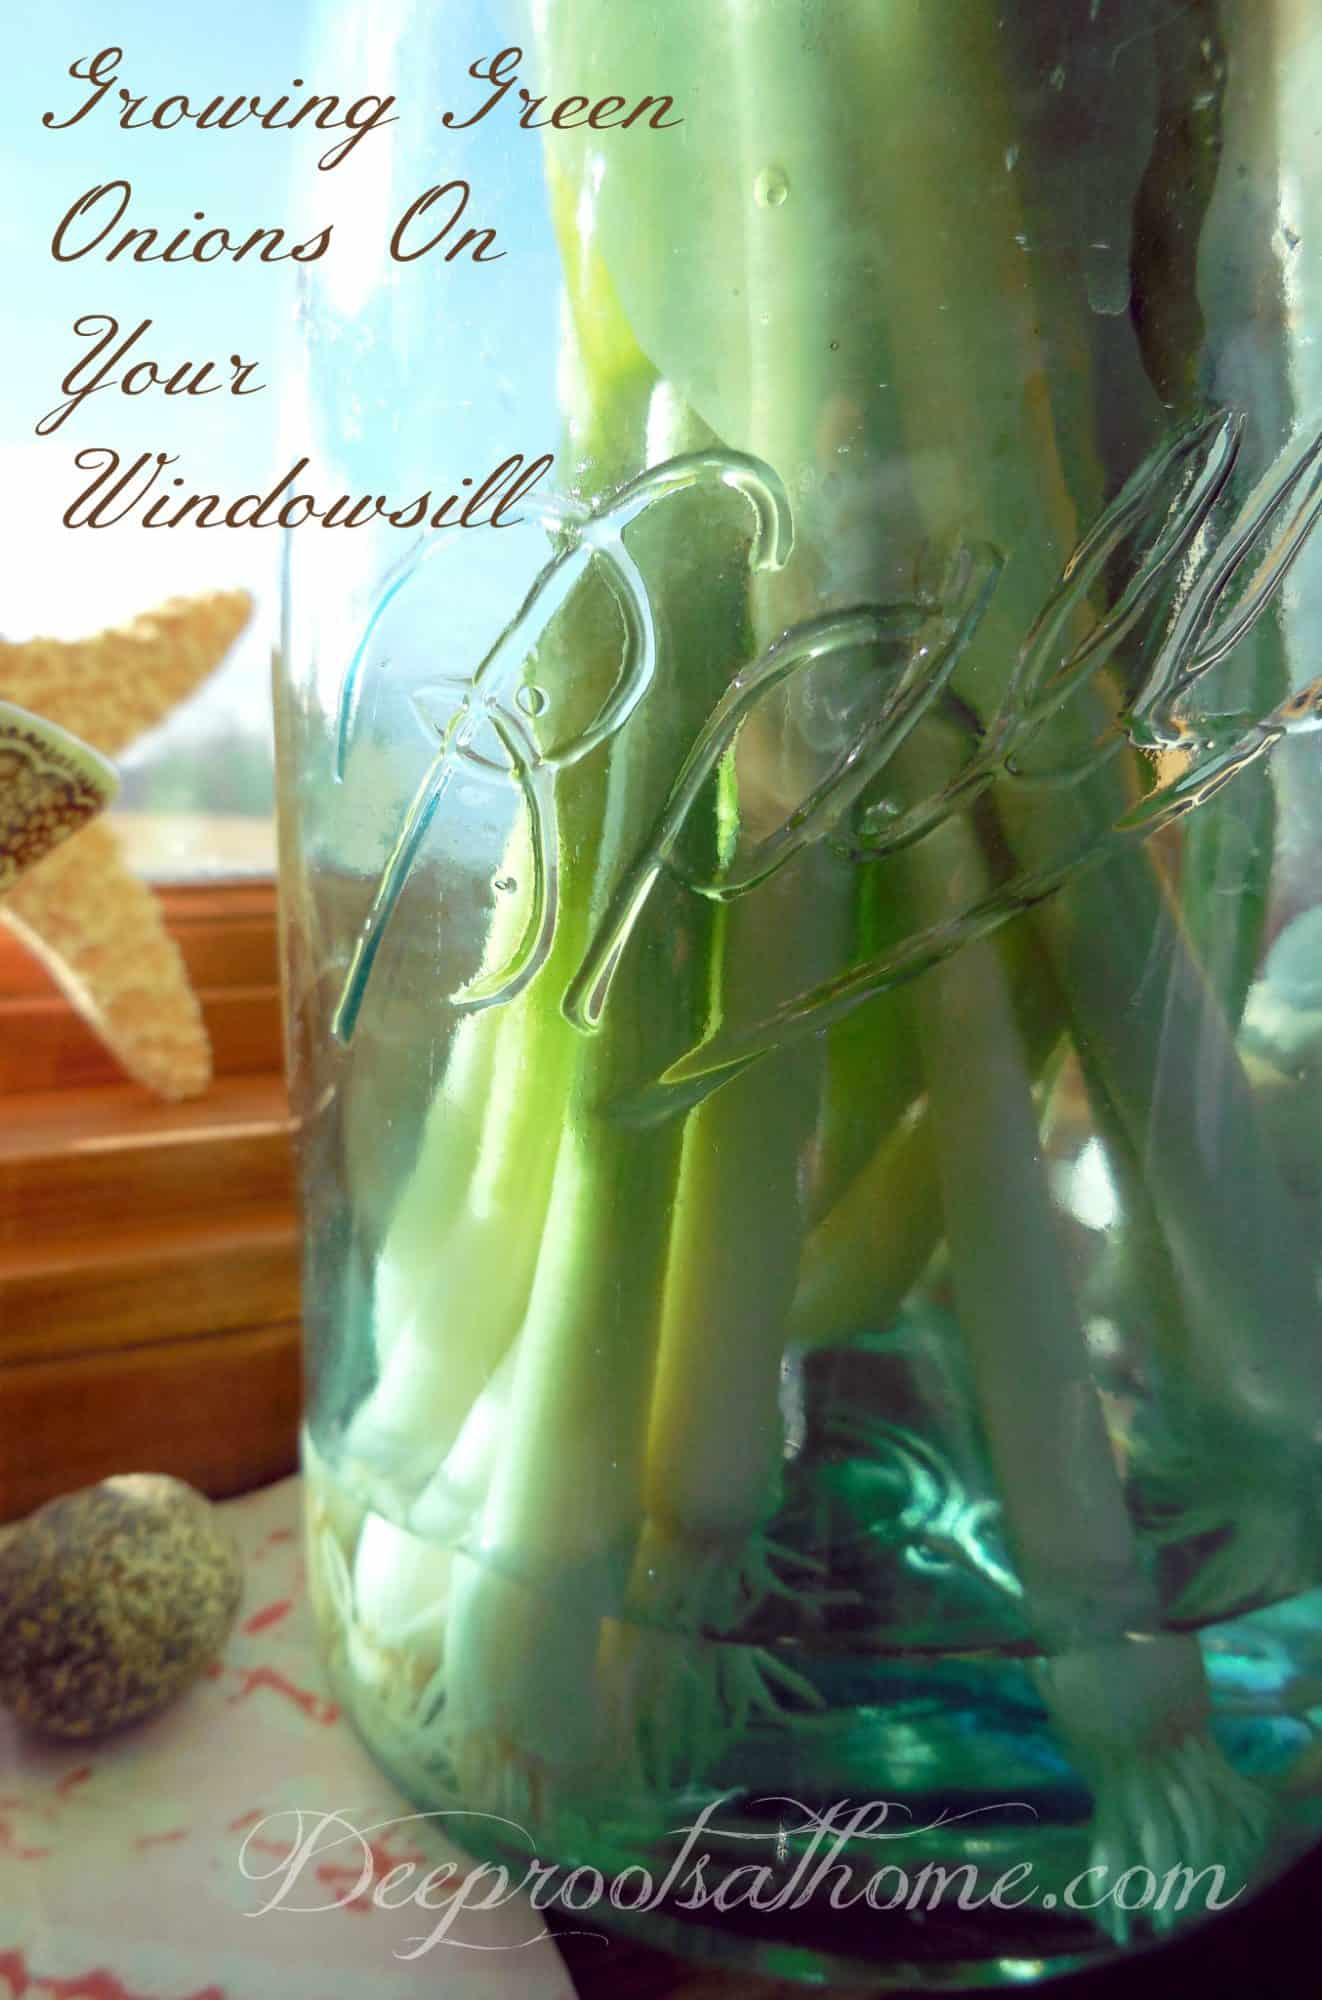 Growing Green Onions On Your Windowsill Couldn't Be Easier. Roots in water in Ball canning jar.